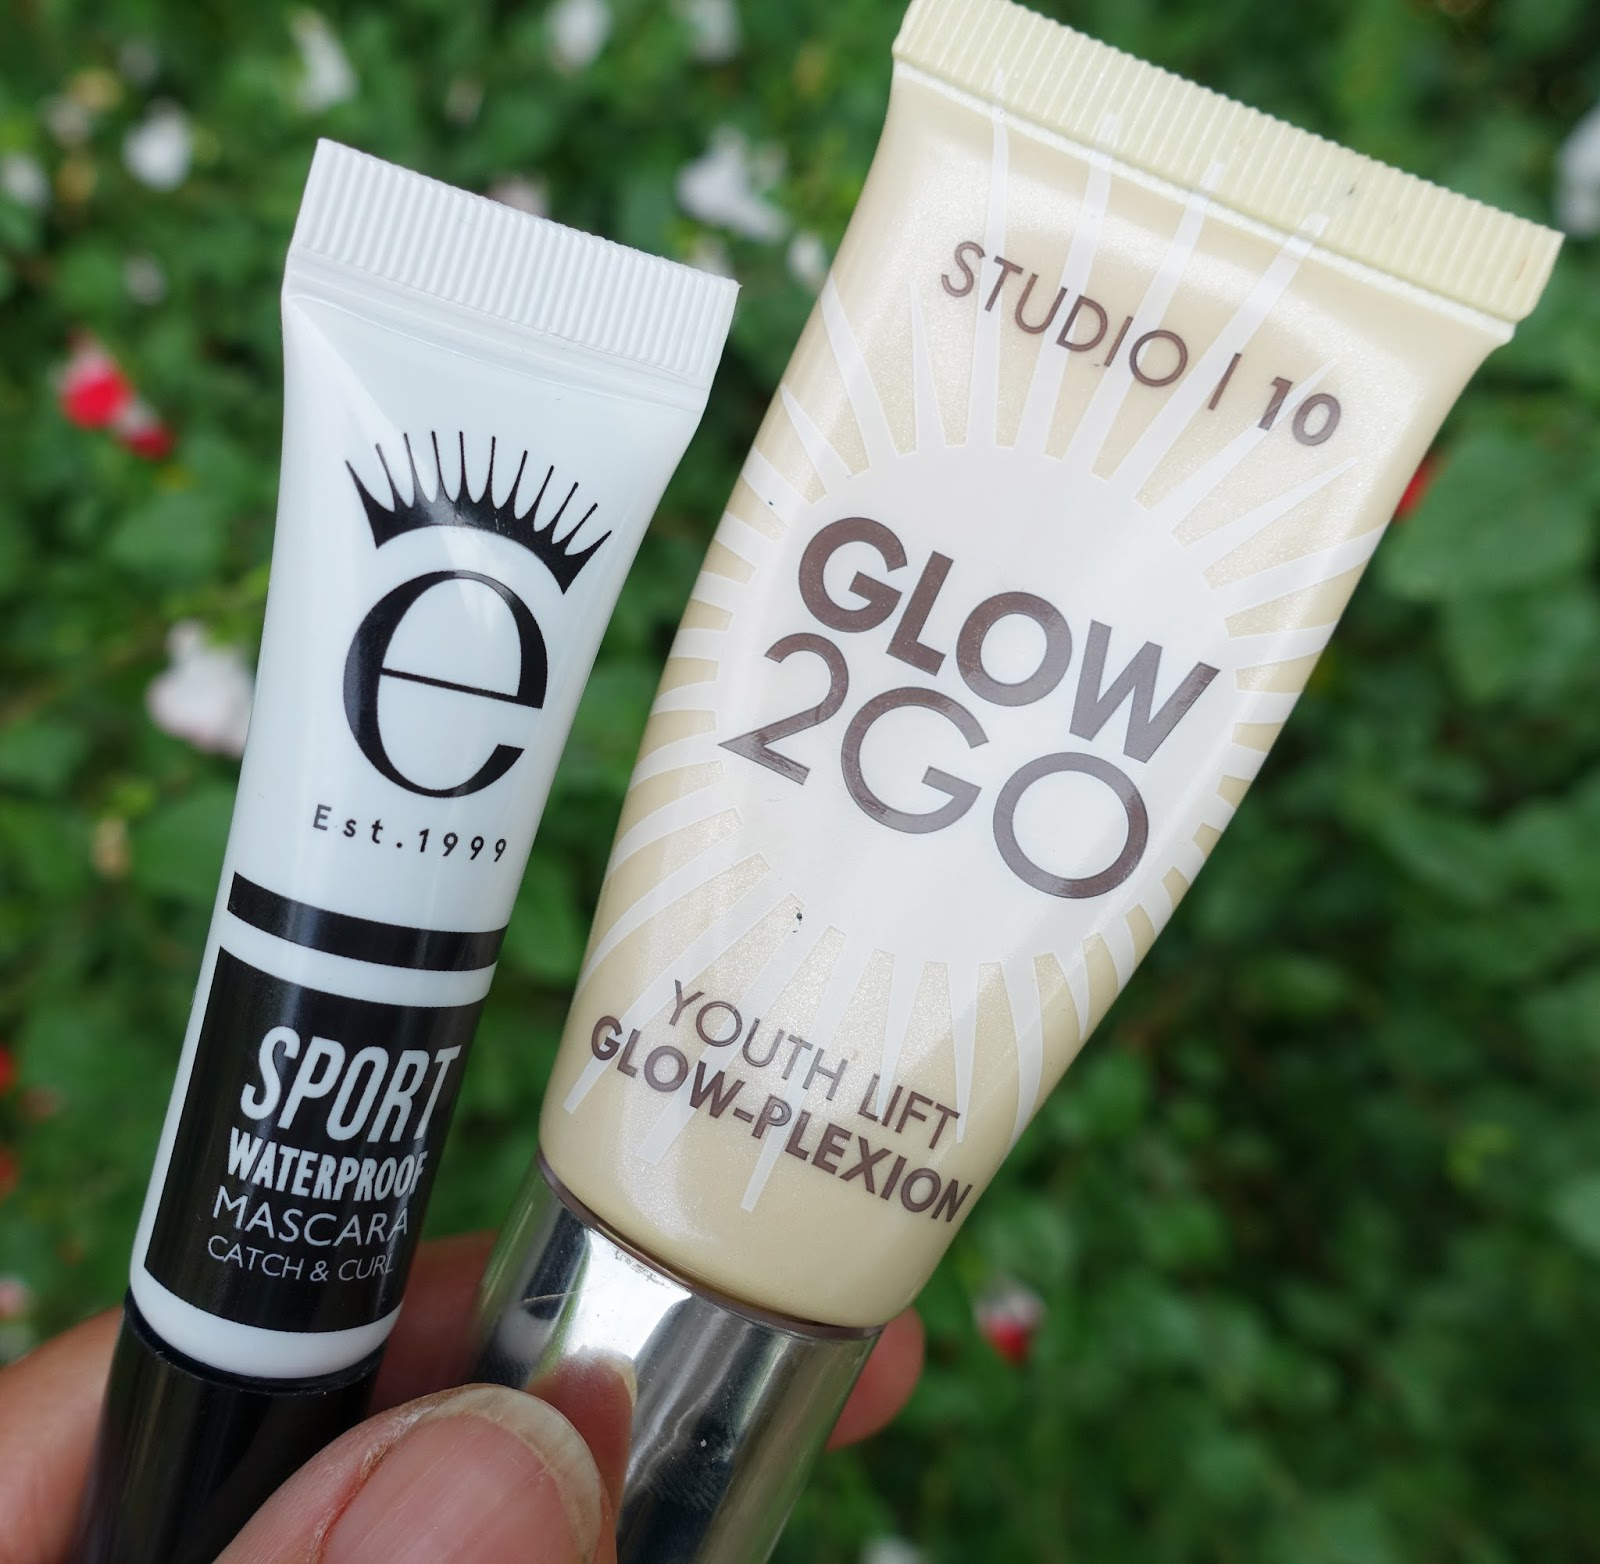 Is This Mutton? reviews two products from the Marks and Spencer Summer Box 2017, an Eyeko waterproof mascara and an illuminating potion from Studio 10